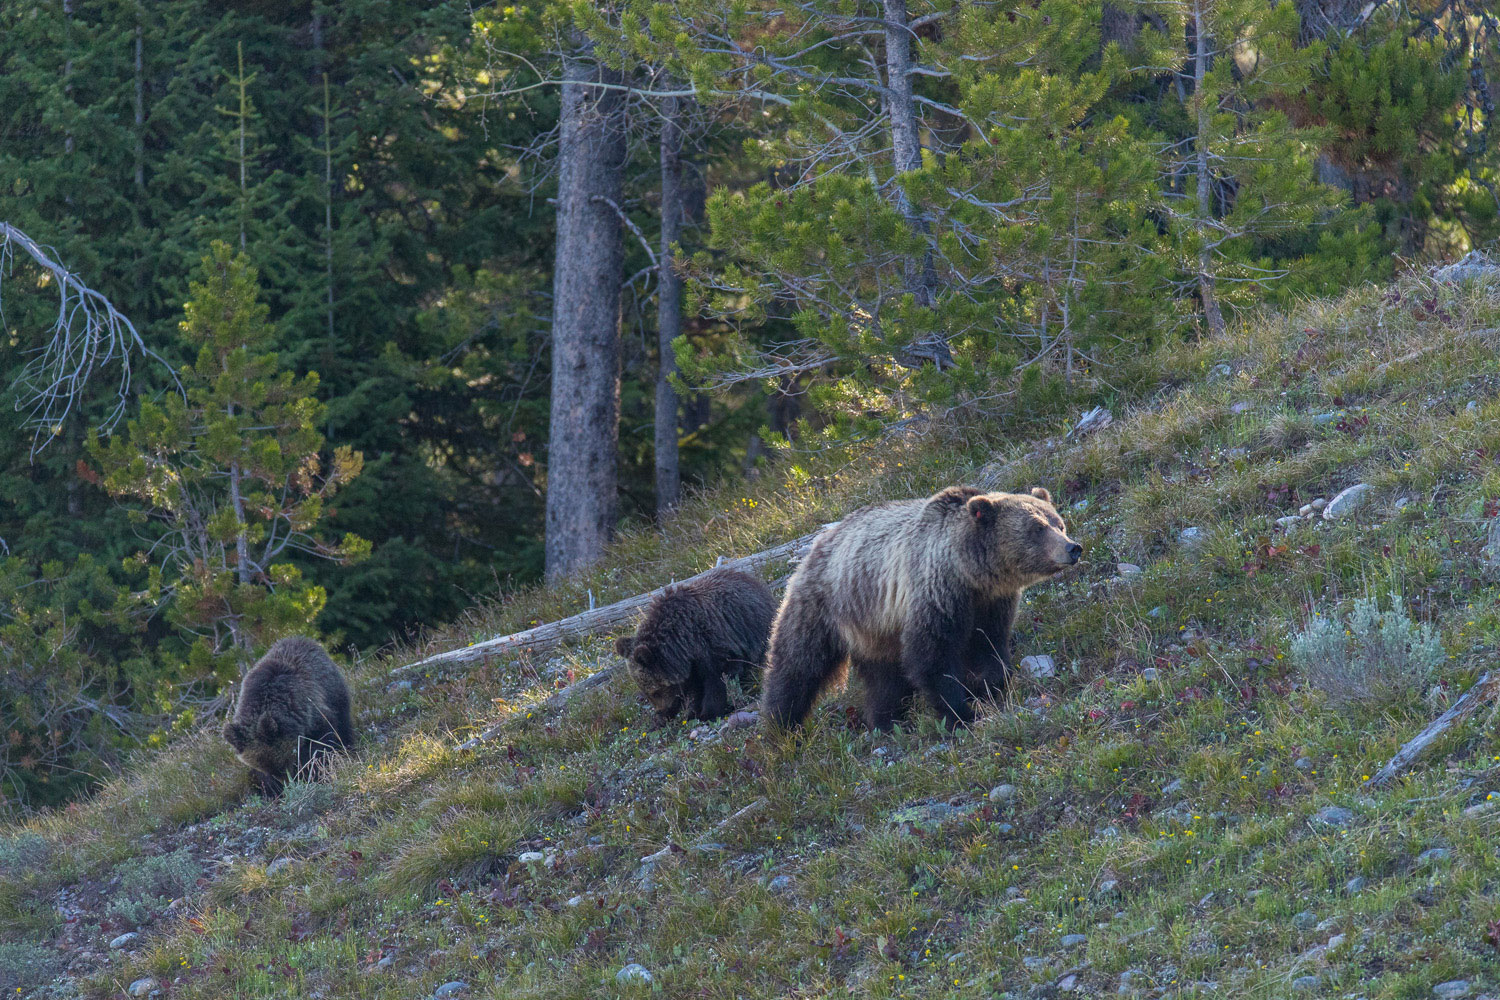 blondie, grizzly, bear, grand teton, photo, image, spring, 2018, photo